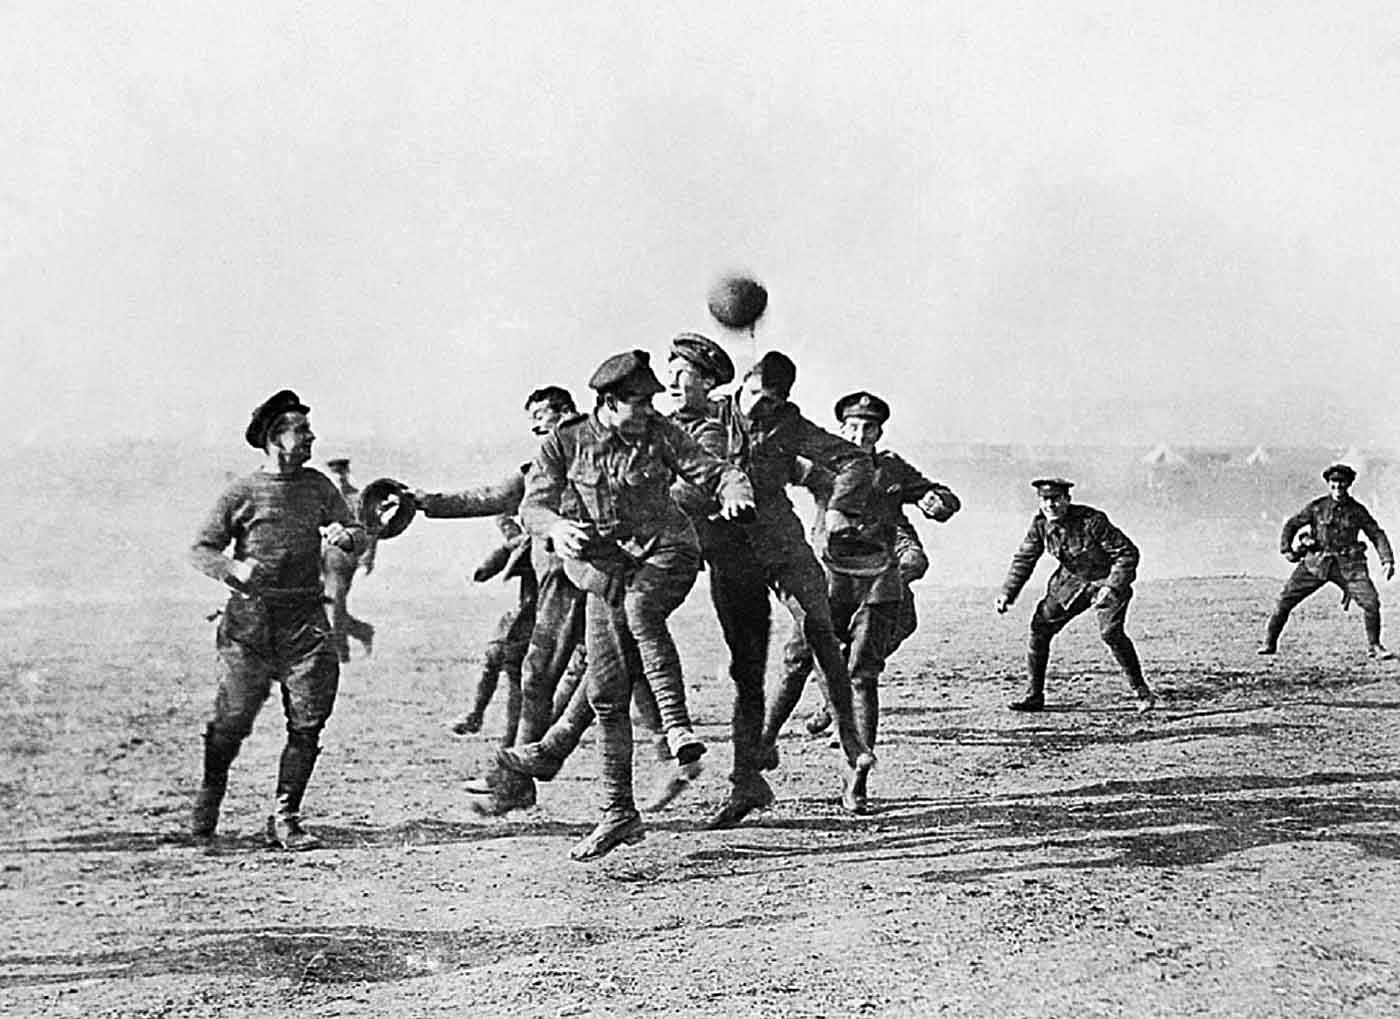 In one of the most iconic images from the Great War, German and British soldiers take a break from killing each other to play an informal game of football between the lines in no-man's land. This image stands out as a testament to the human spirit, and that even in the most atrocious conditions, our love of sport endures.